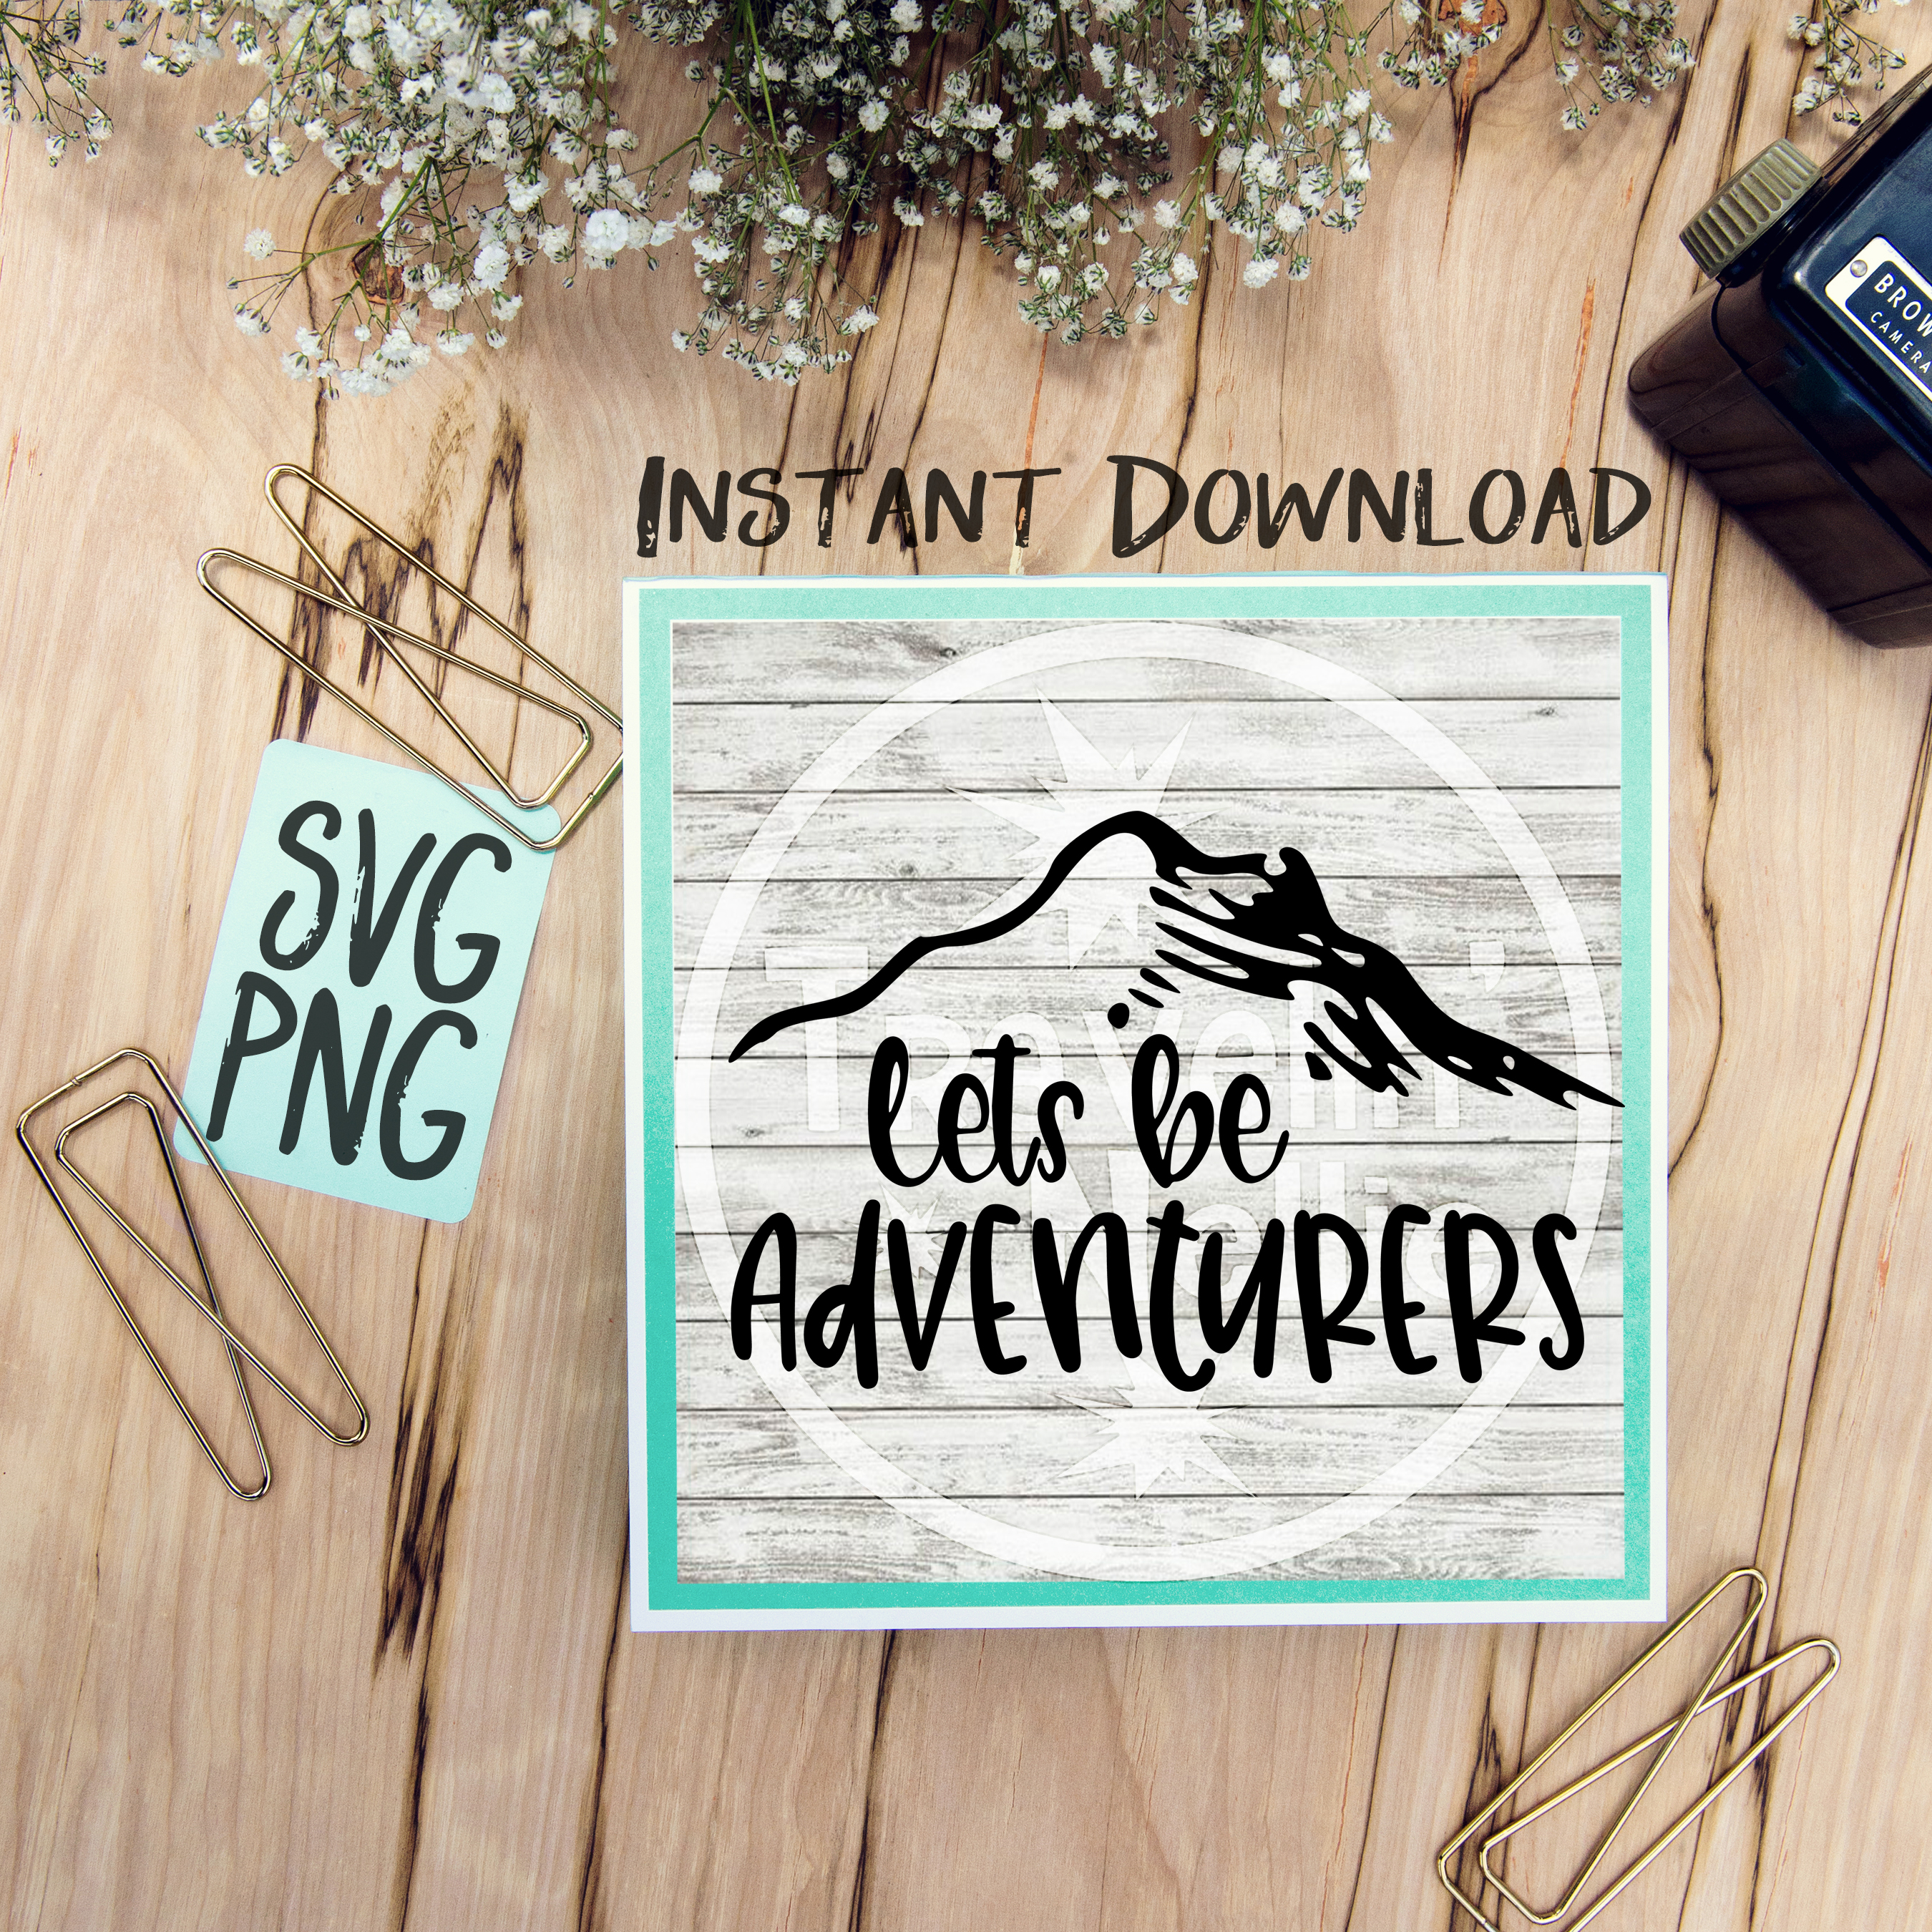 Lets Be Adventurers SVG PNG Cricut Cameo Silhouette Brother Scan & Cut Crafters Cutting Files for Vinyl Cutting Sign Making example image 1